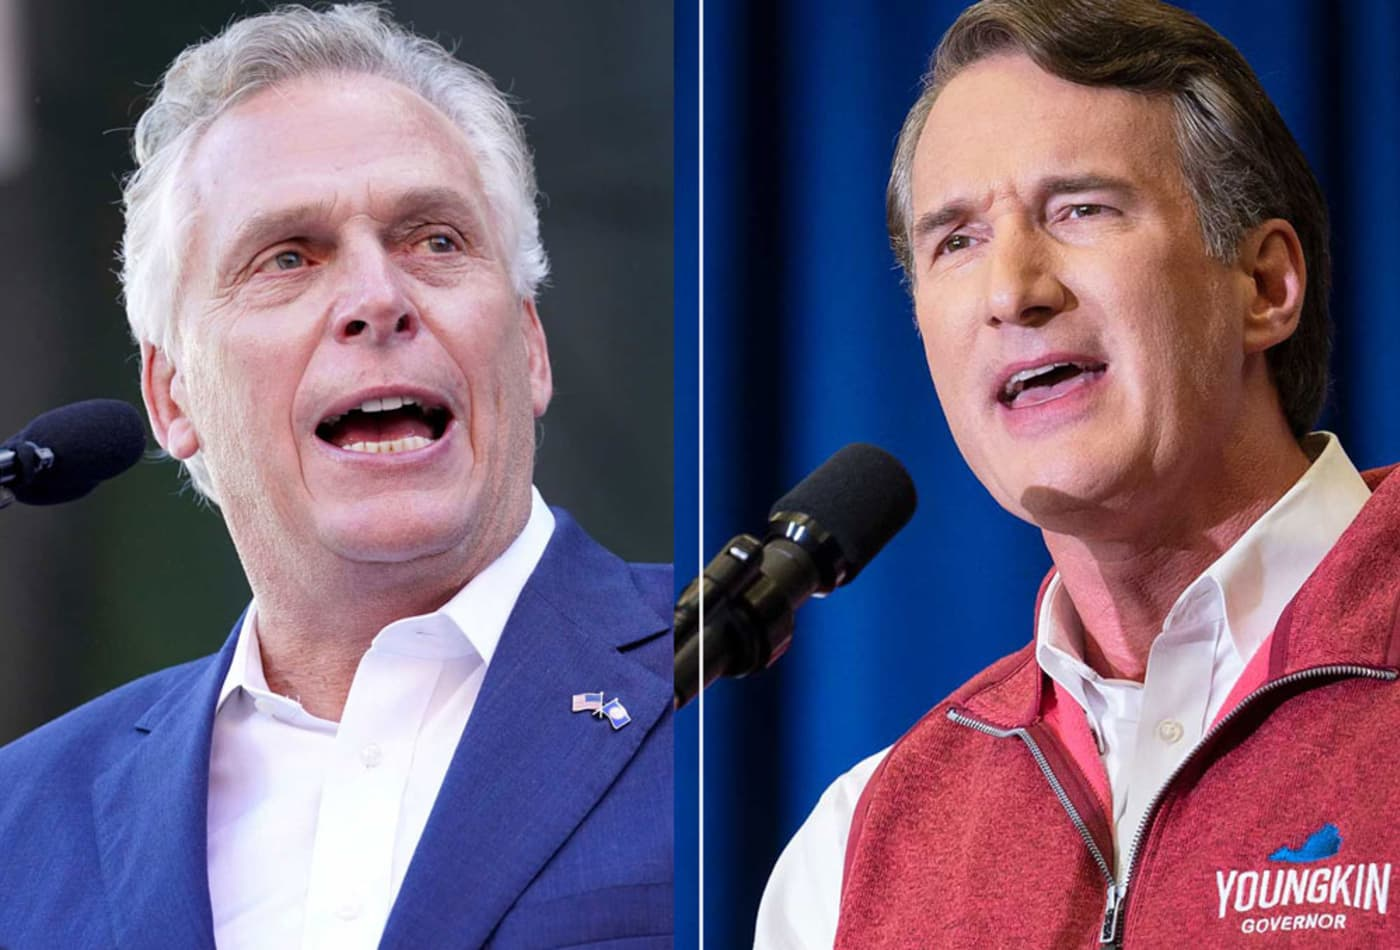 Democrats take the lead in early voting in Virginia governor's race, but GOP could close the gap on election day